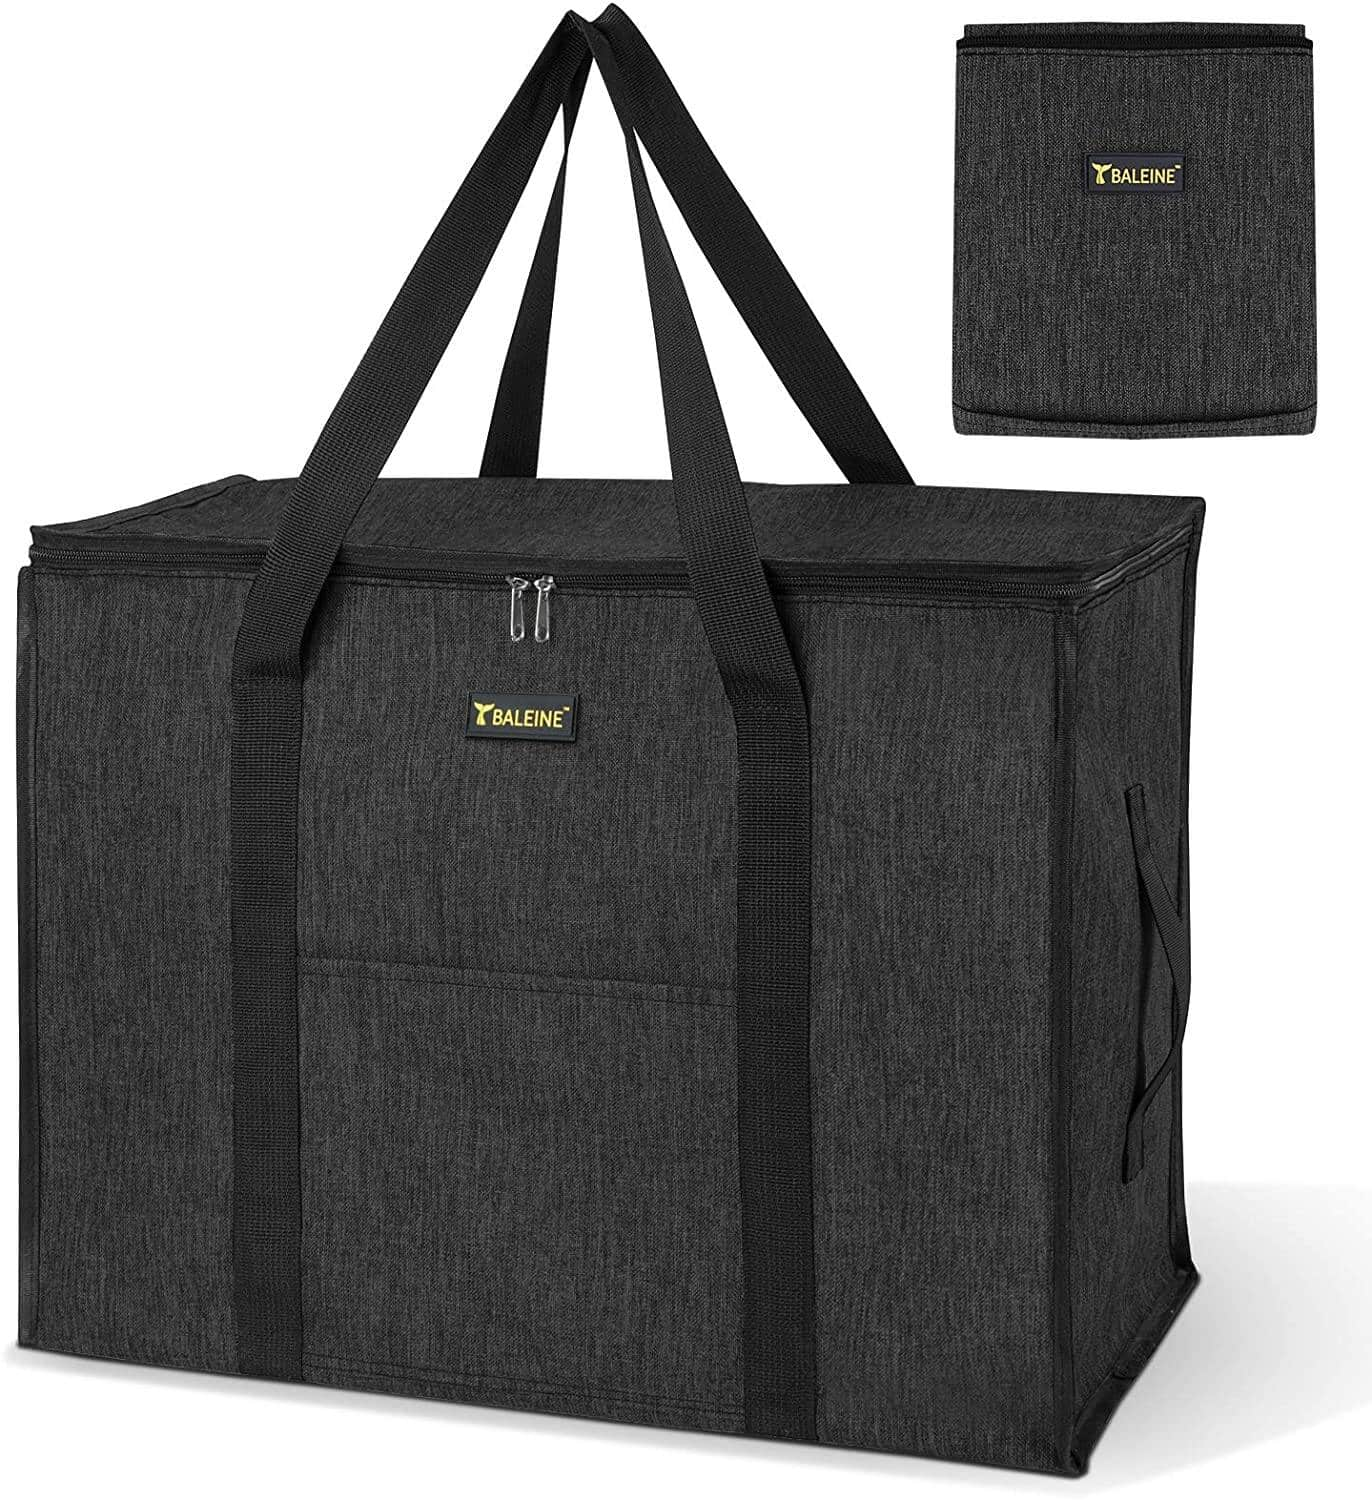 Storage Tote with Zippers & Carrying Handles $13.99 + Free Shipping w/ Amazon Prime or Orders $25+